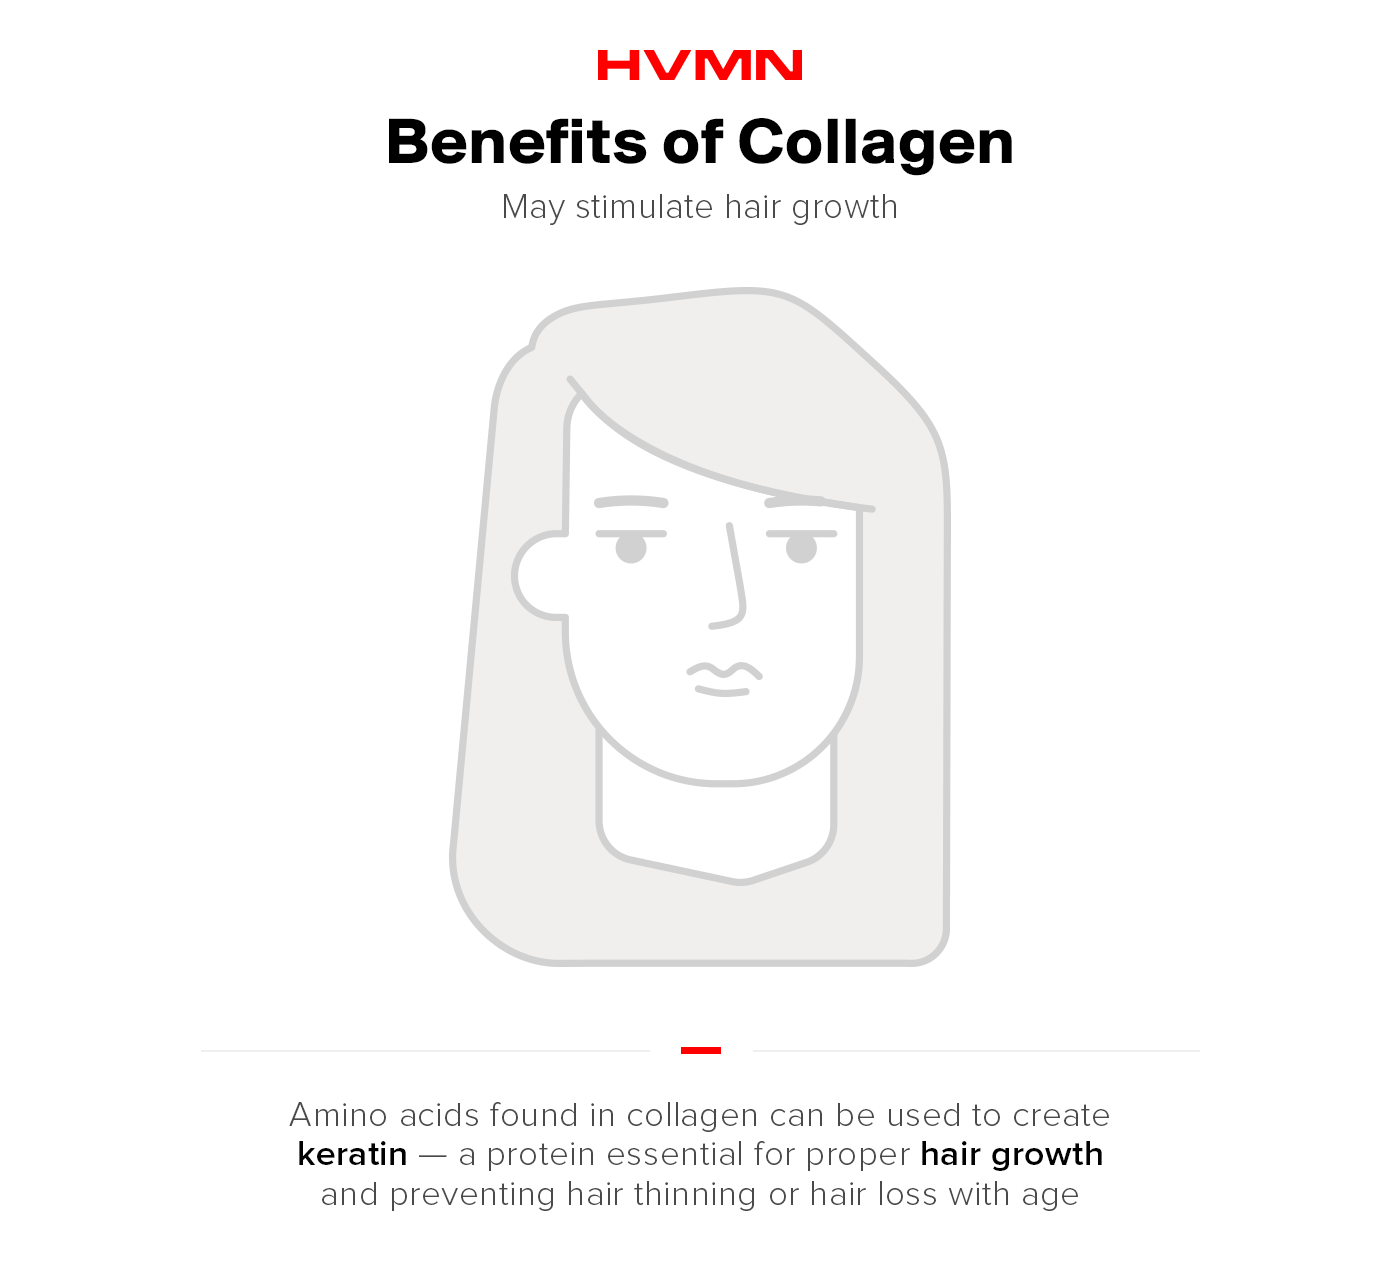 Benefits of collagen -- stimulated hair growth.